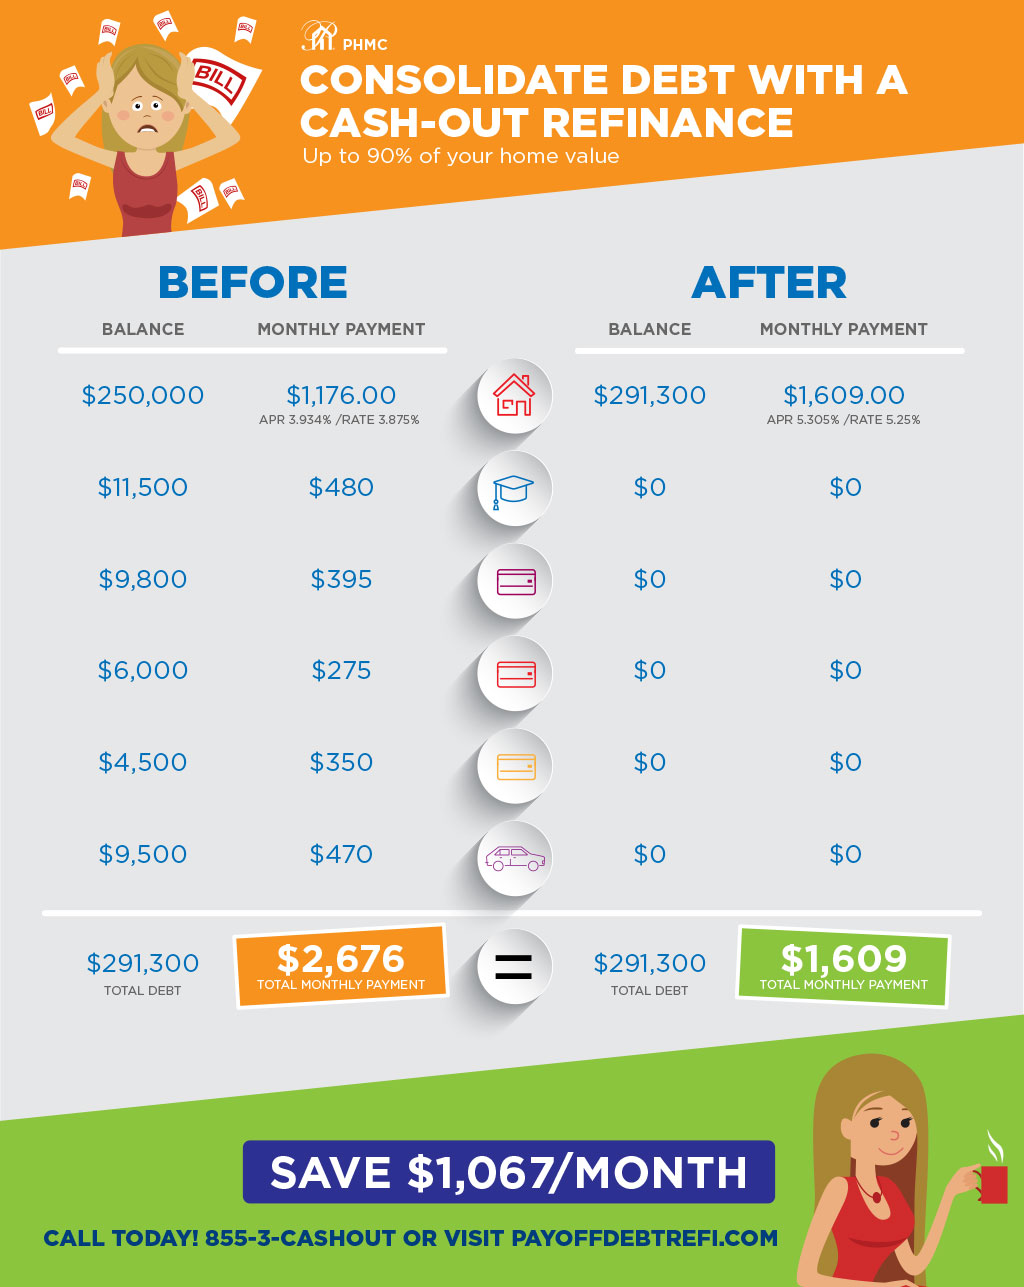 Scenario of a before and after payment plan of someone in debt who consolidates their debt with a cash-out refinance, using up to 90% of their home value. FInd this image on blog.phmc.com